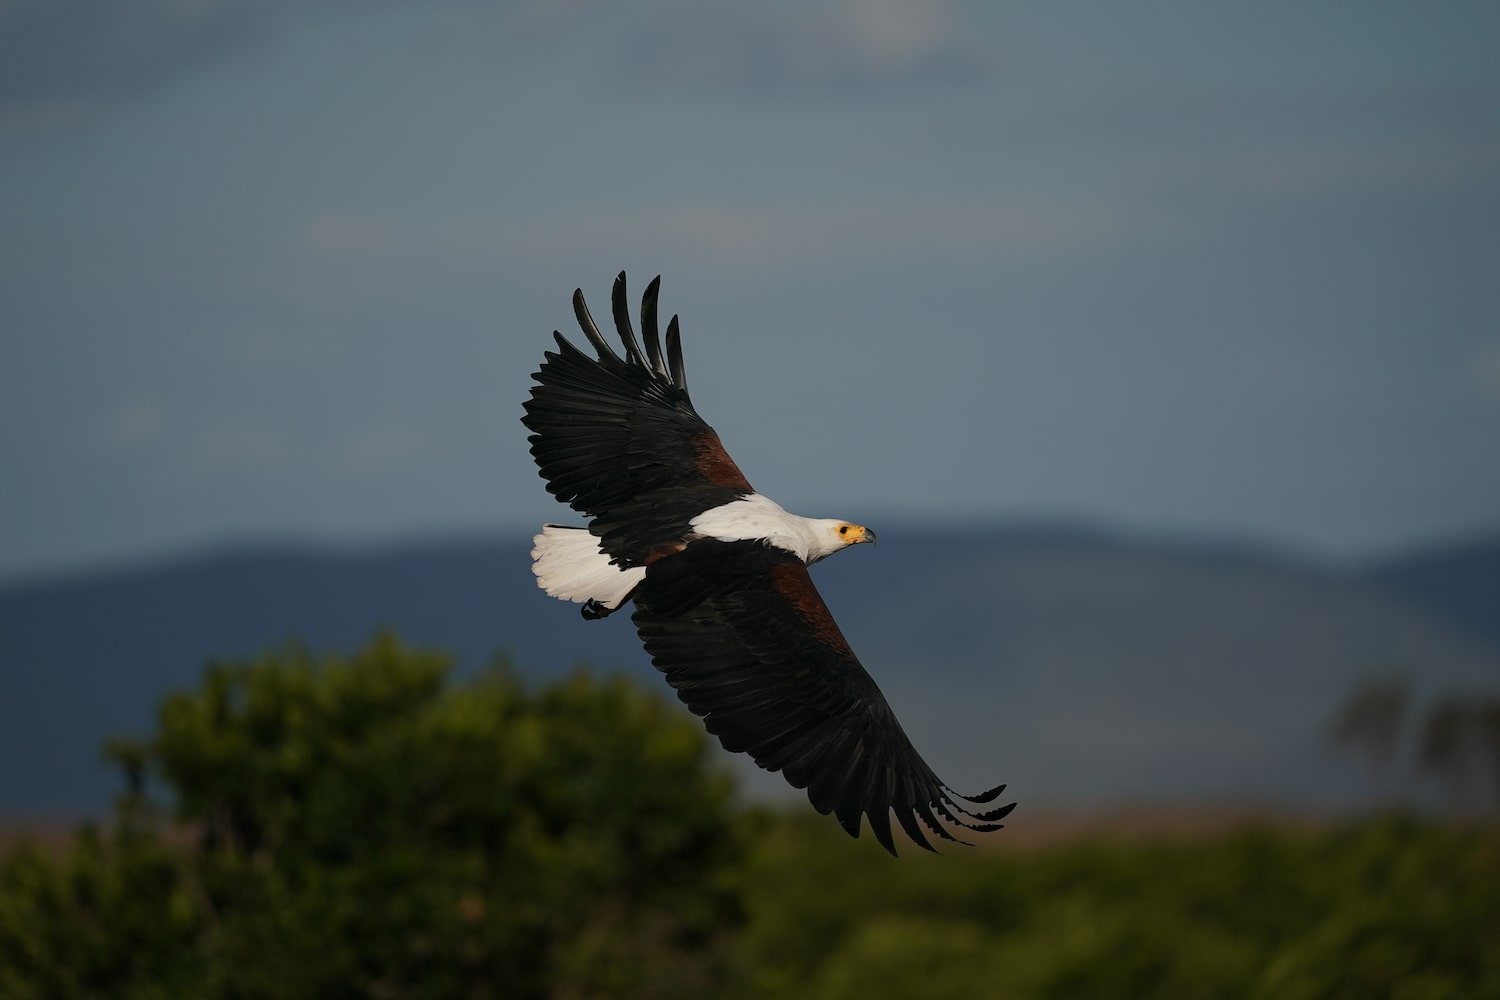 eagle-in-flight-the-mountains-alpha-7III